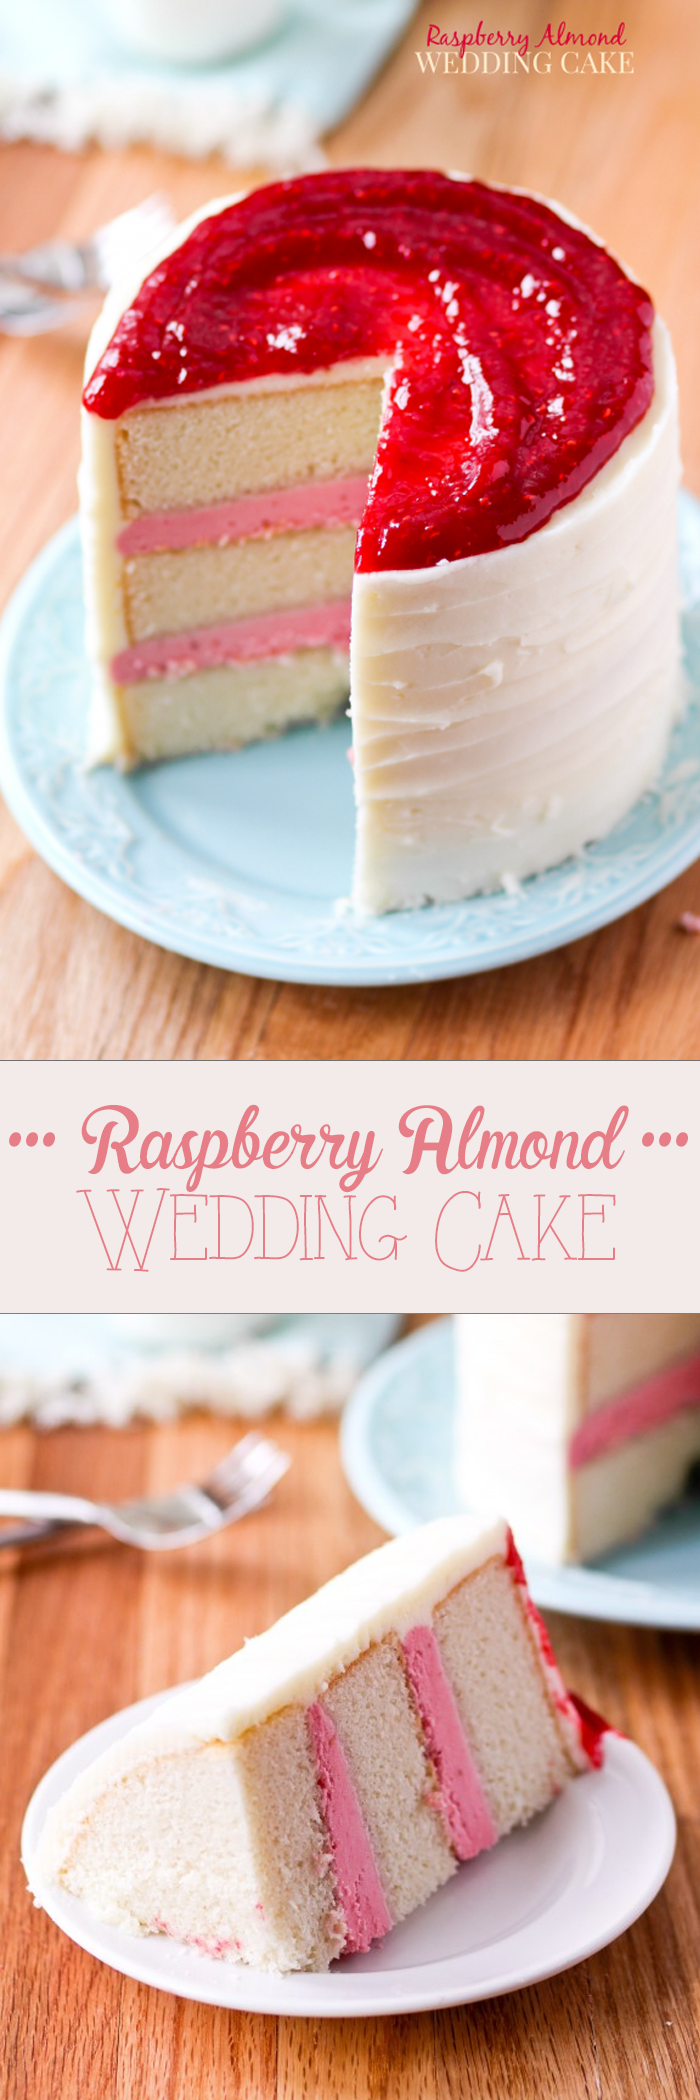 Food And Cake Recipes Raspberry Almond Wedding